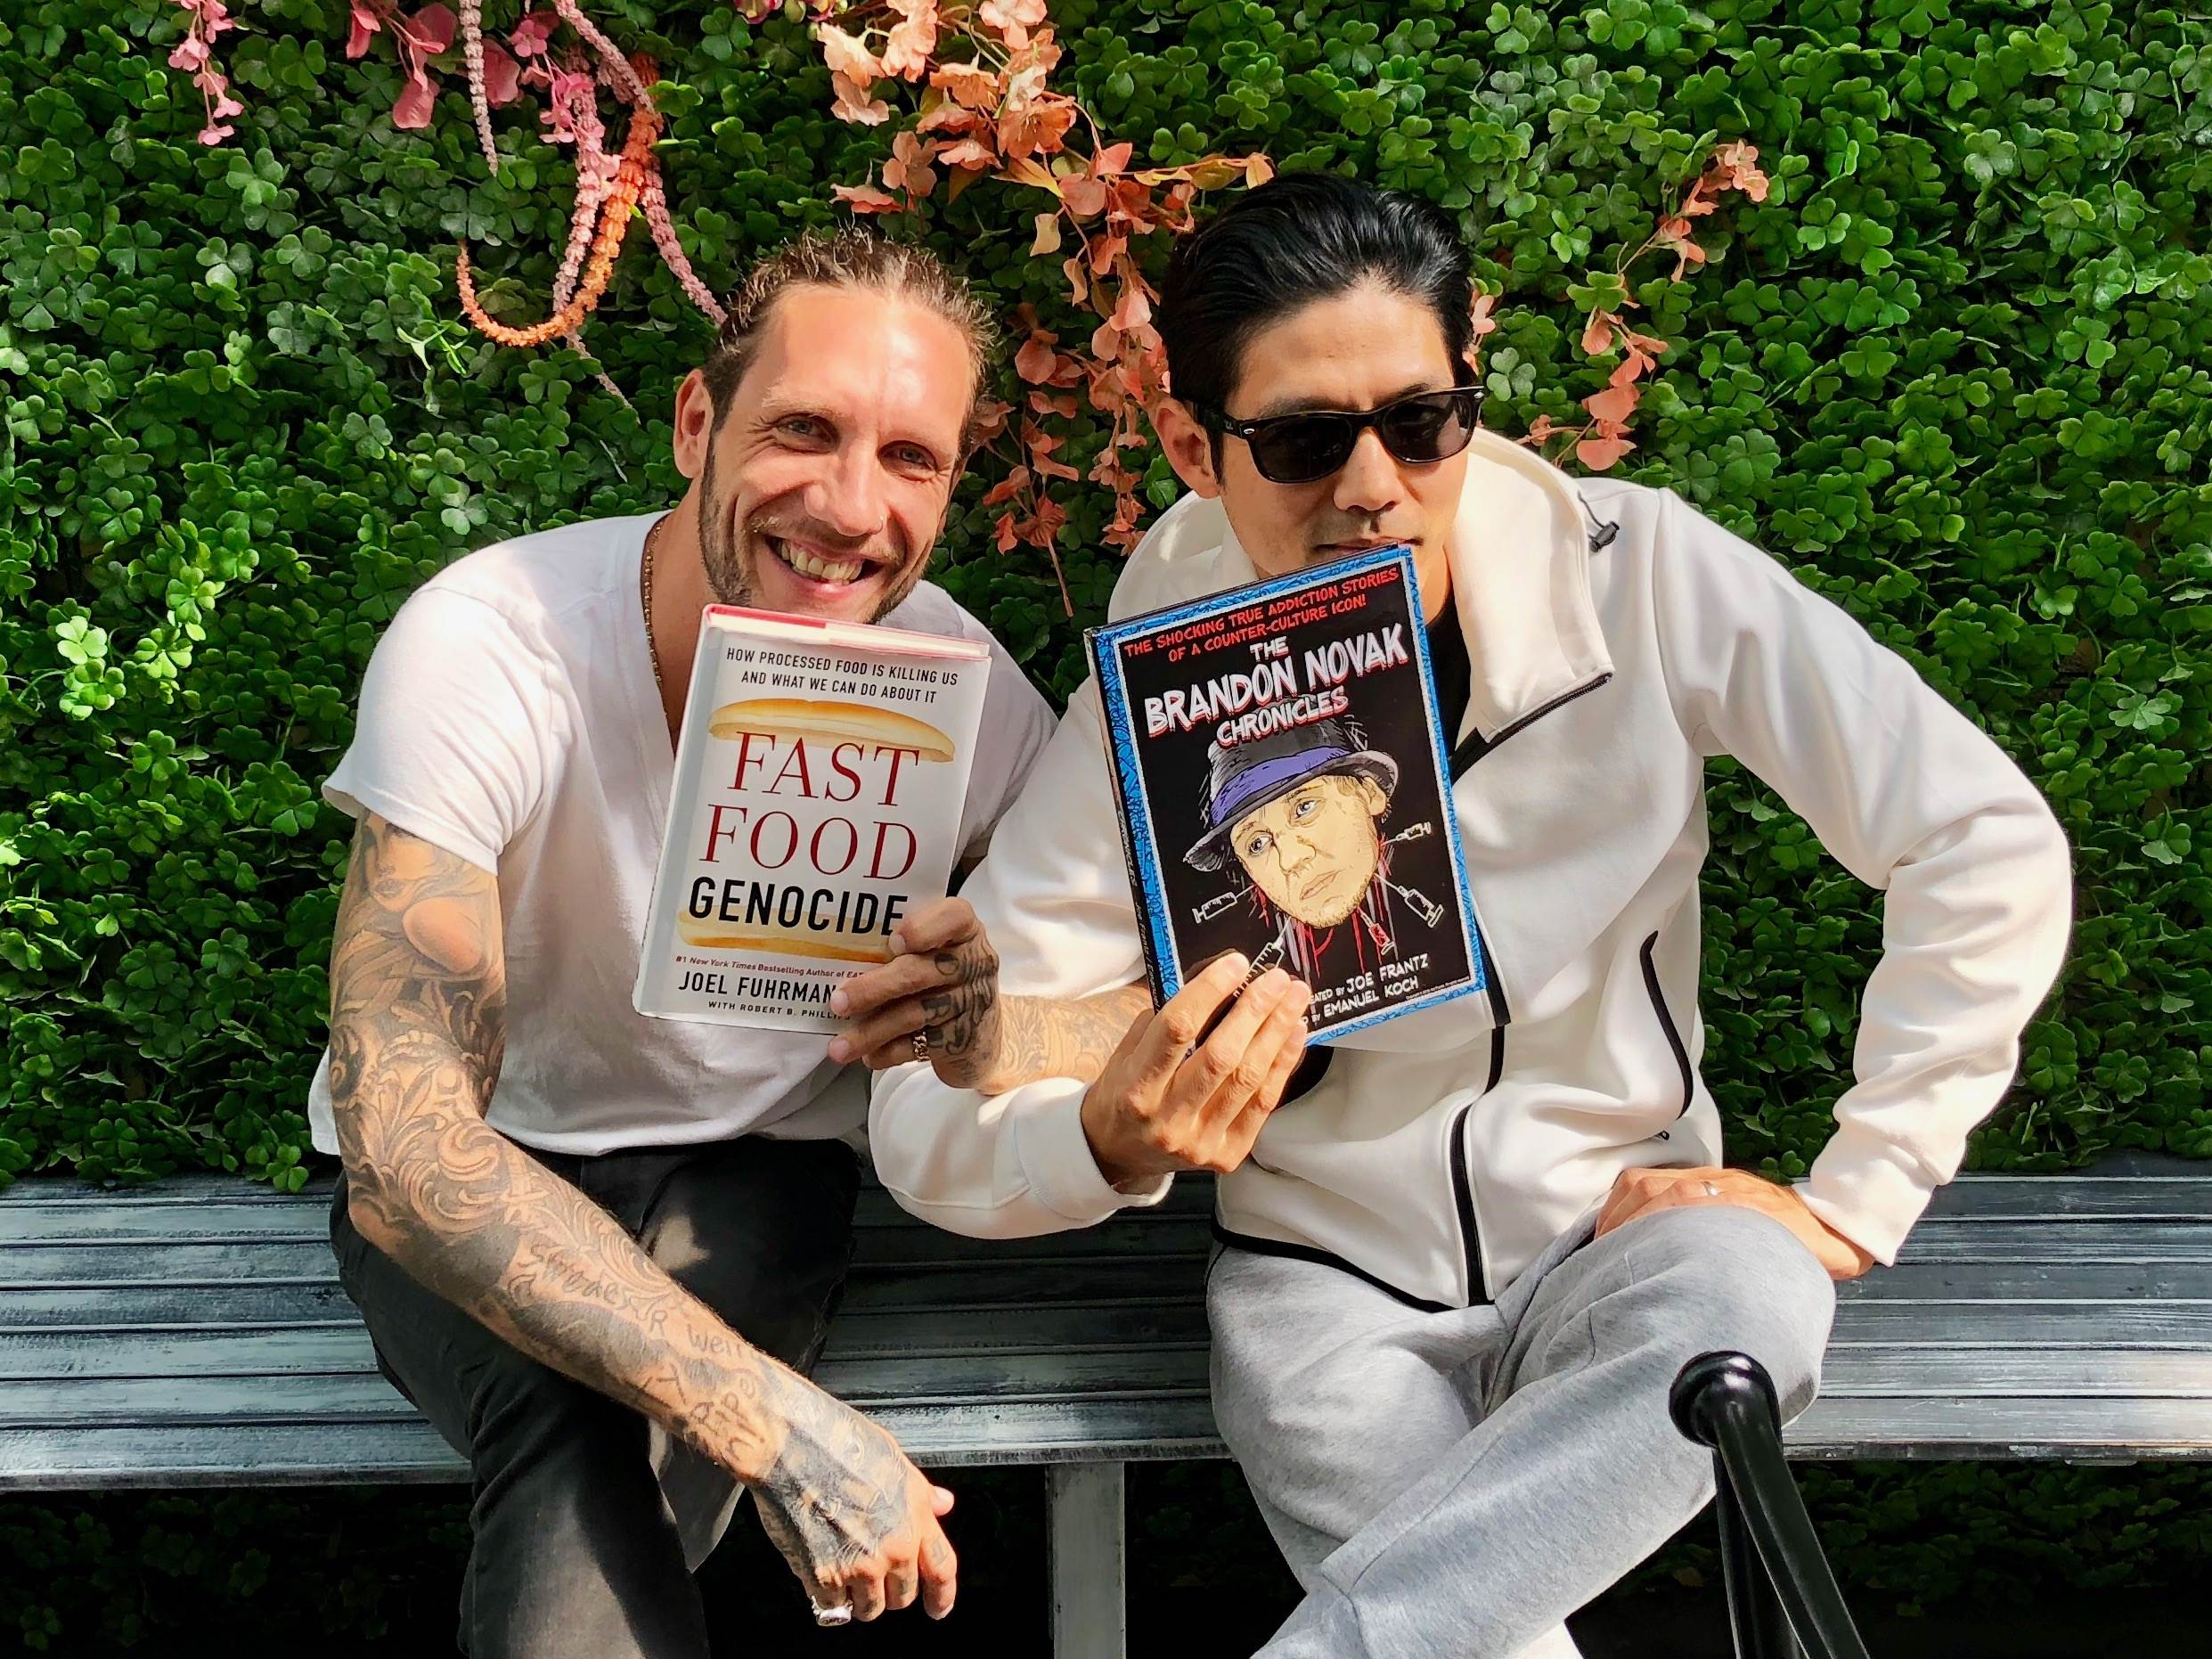 Brandon Novak and Dr Yi enjoying their new favorite books - Fast Food Genocide from fellow New York Times Best Selling Author Joel Fuhrman, MD and The Brandon Novak Chronicles